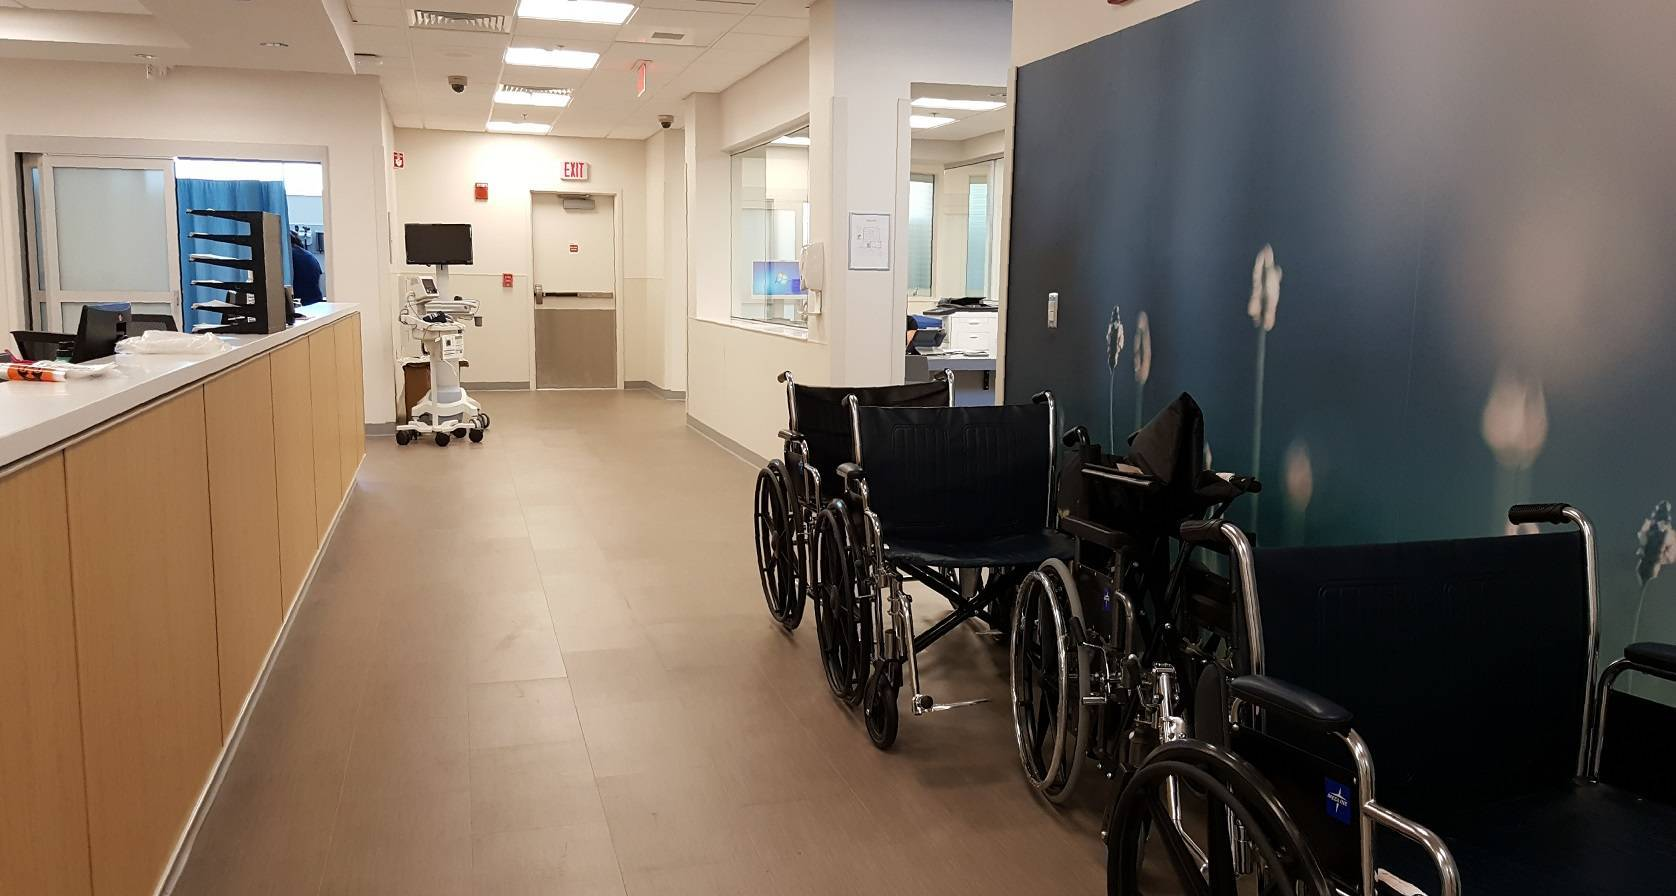 d2742ed93a93ccb269d5_wheelchairs__and_desk.jpg